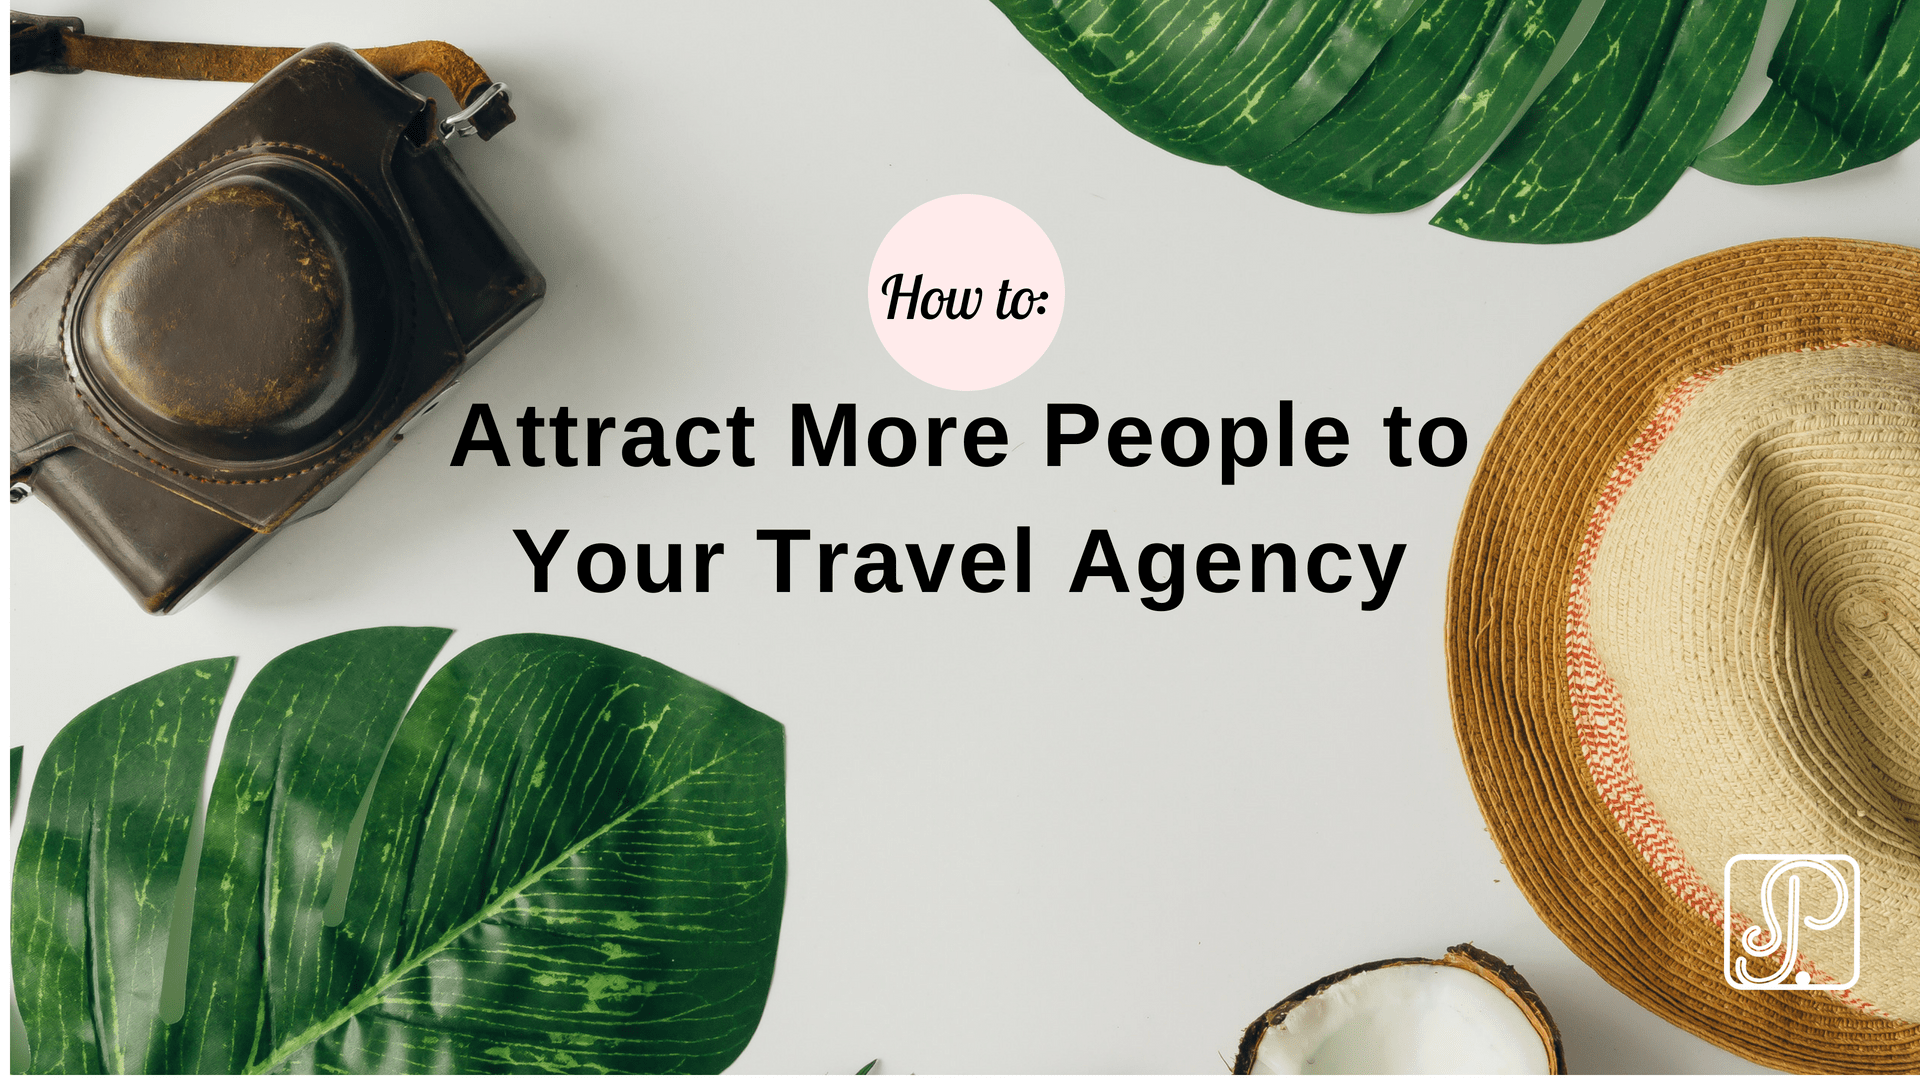 How to Attract More People to Your Travel Agency